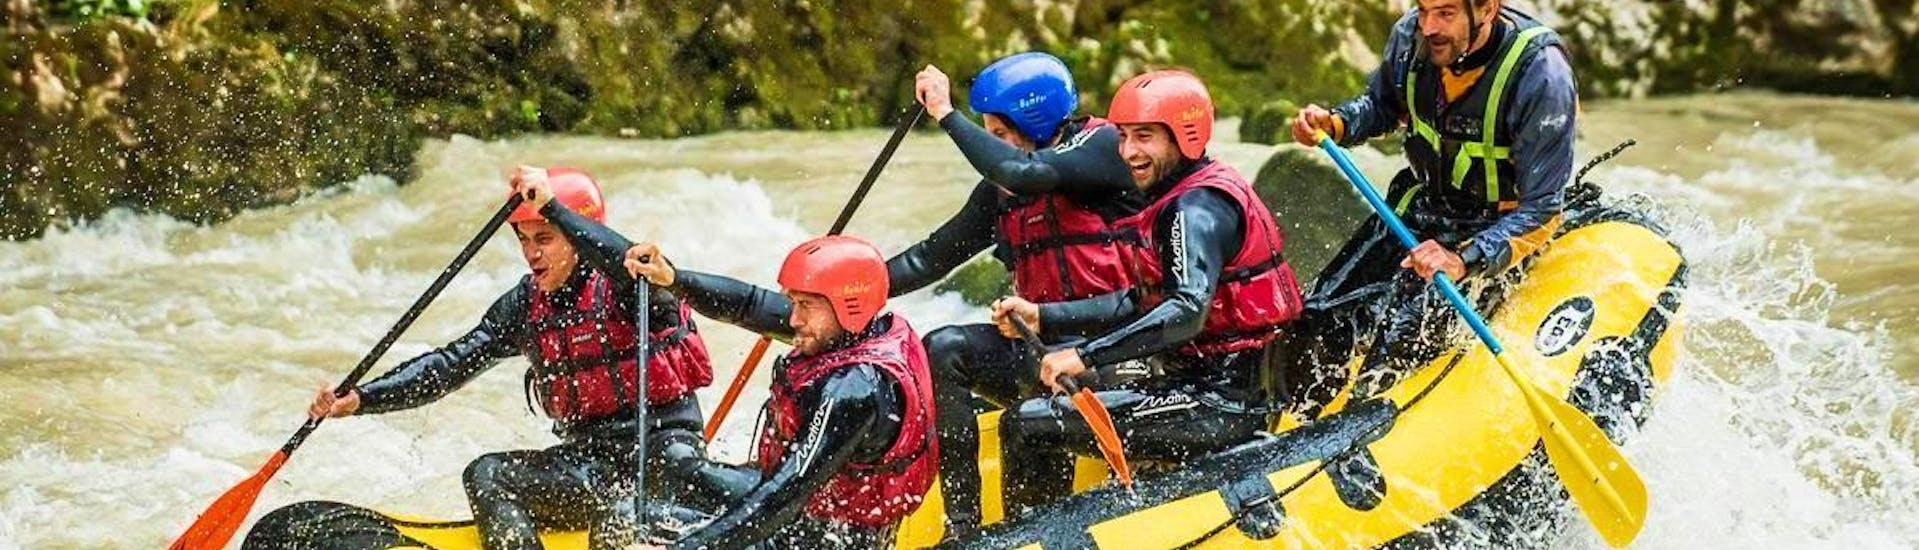 Power Rafting on the Saalach River - Classic 3